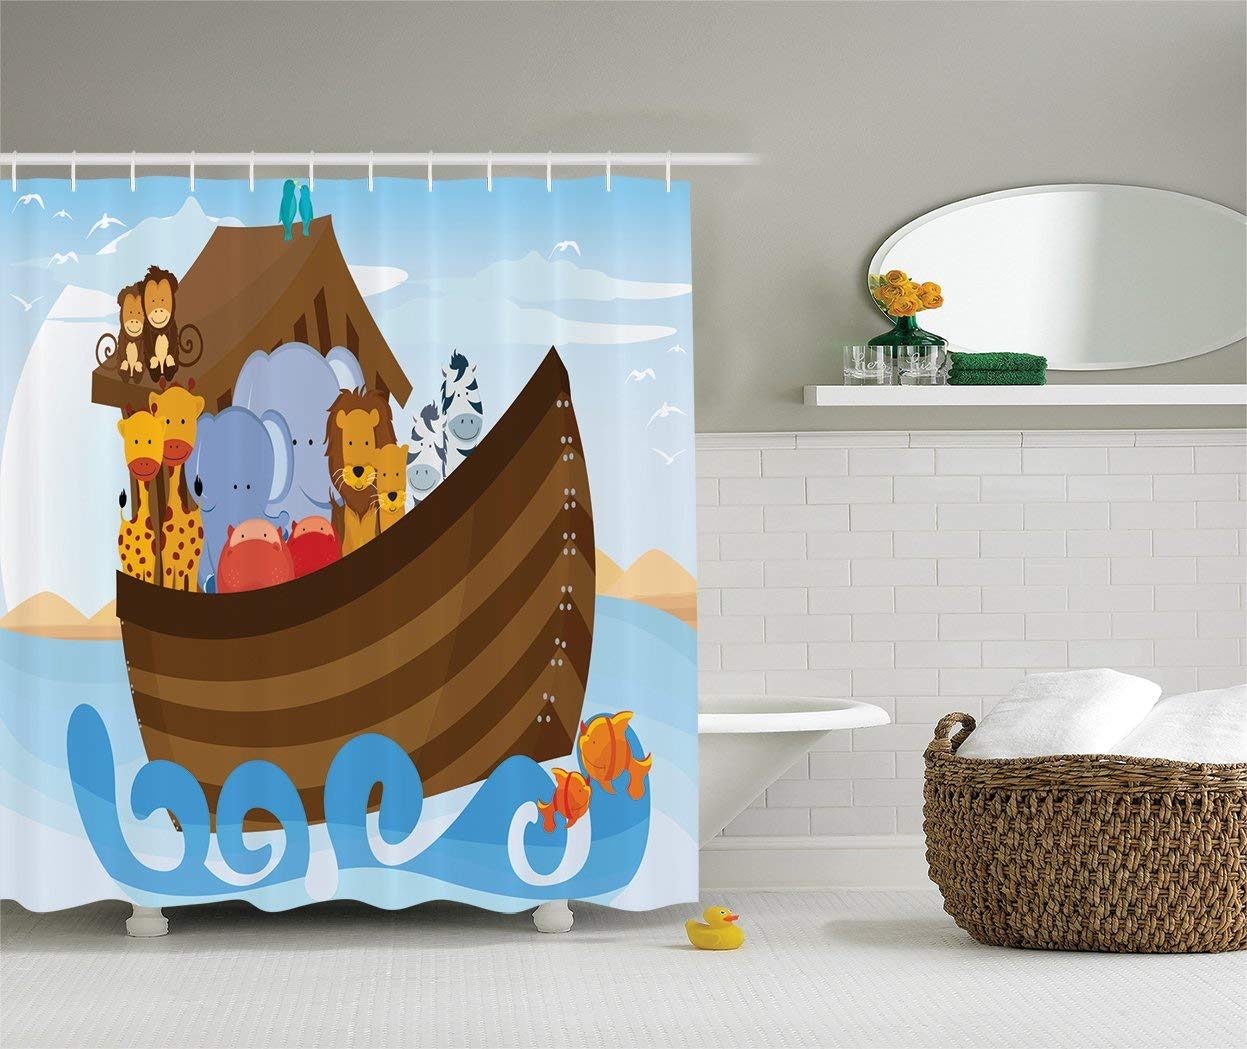 Cheap Ark Boat, find Ark Boat deals on line at Alibaba com